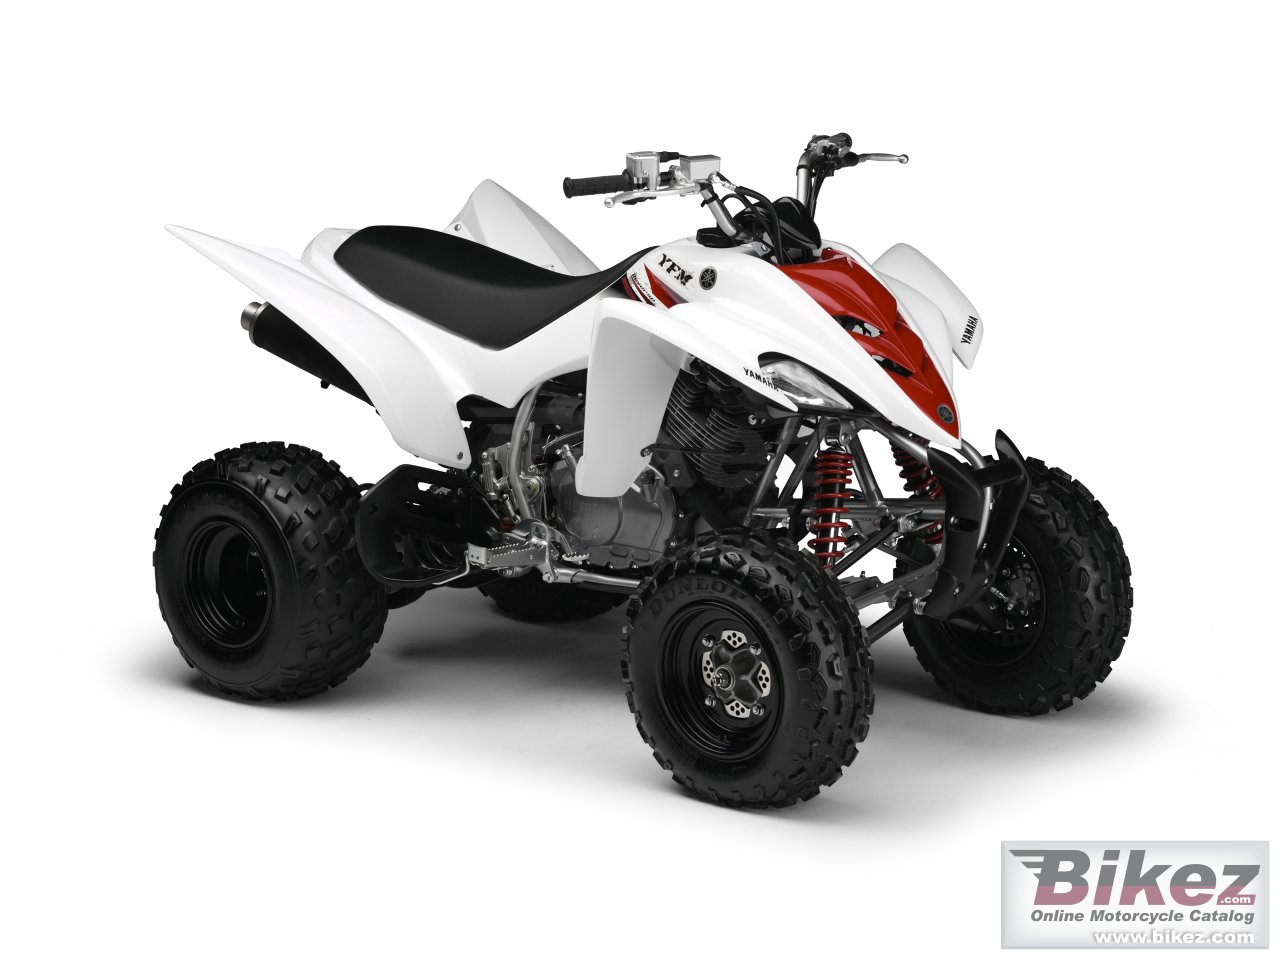 Big Yamaha yfm350r raptor picture and wallpaper from Bikez.com